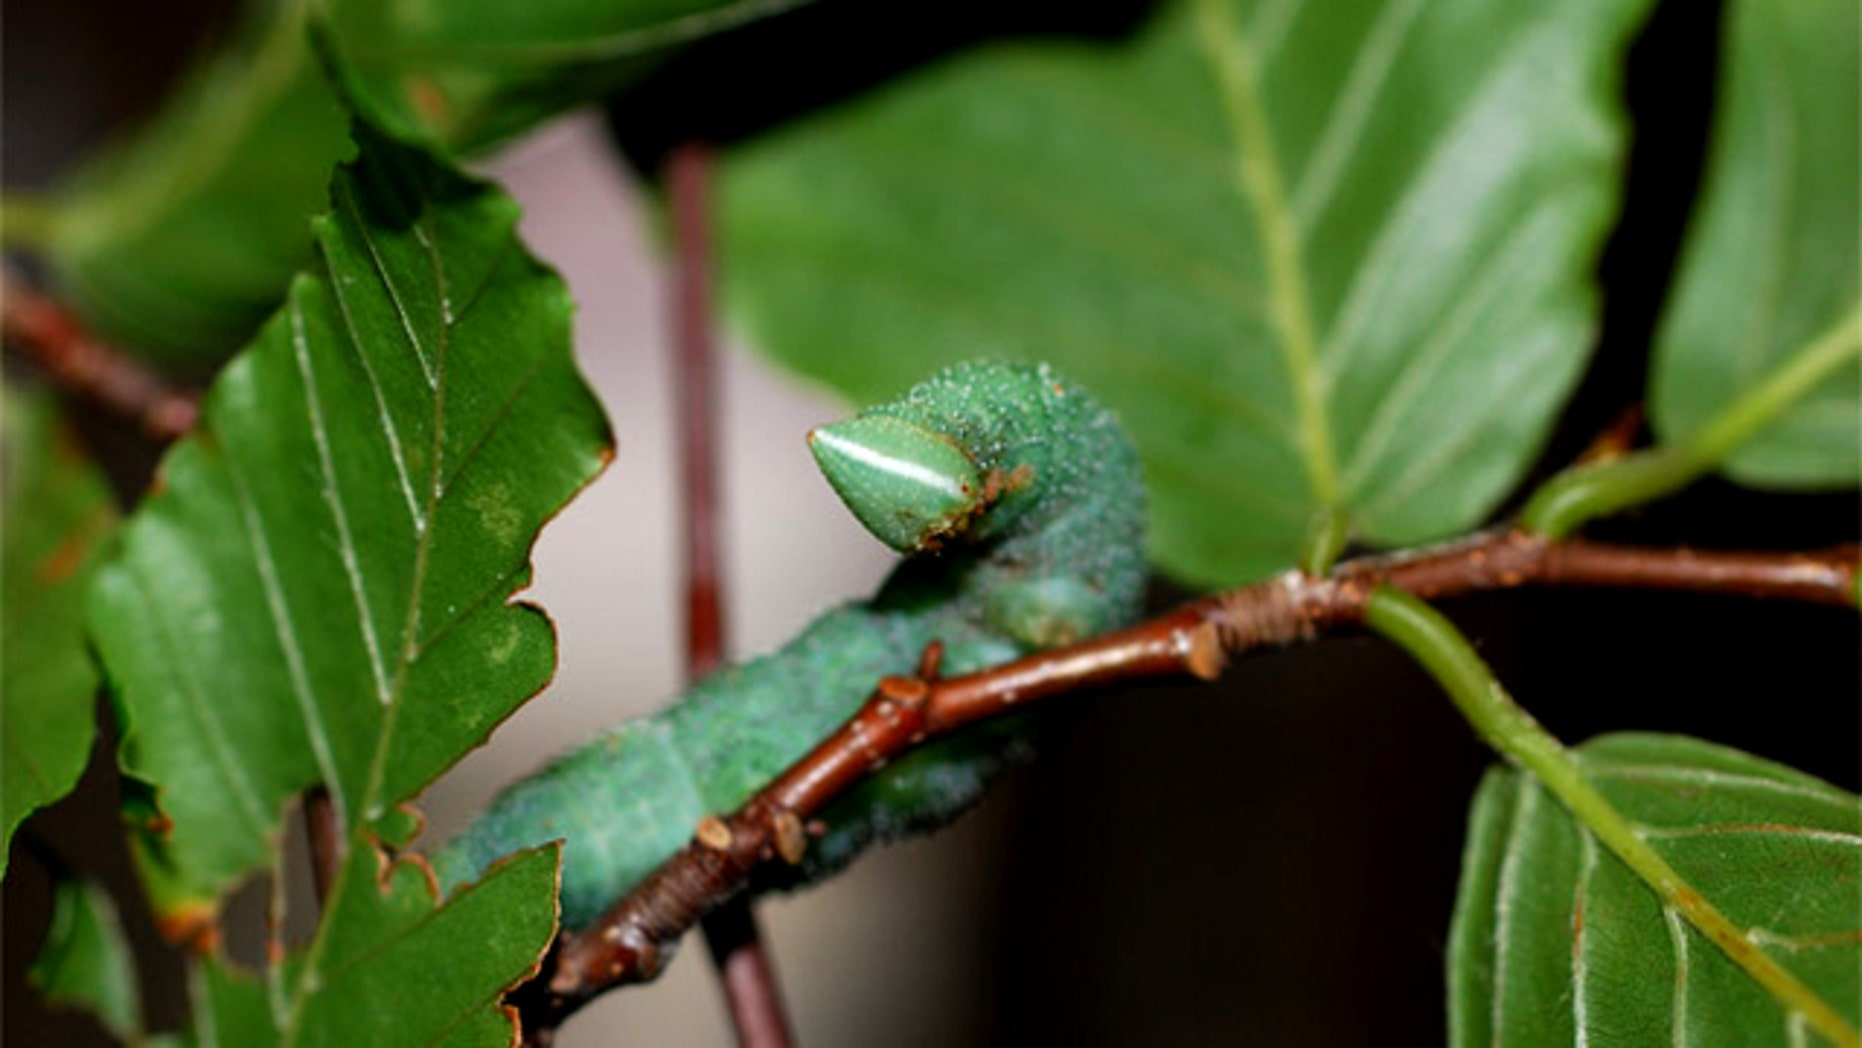 The walnut sphinx caterpillar, a type of moth larva, can whistle out holes in its side, noises that can fend off attacking birds.